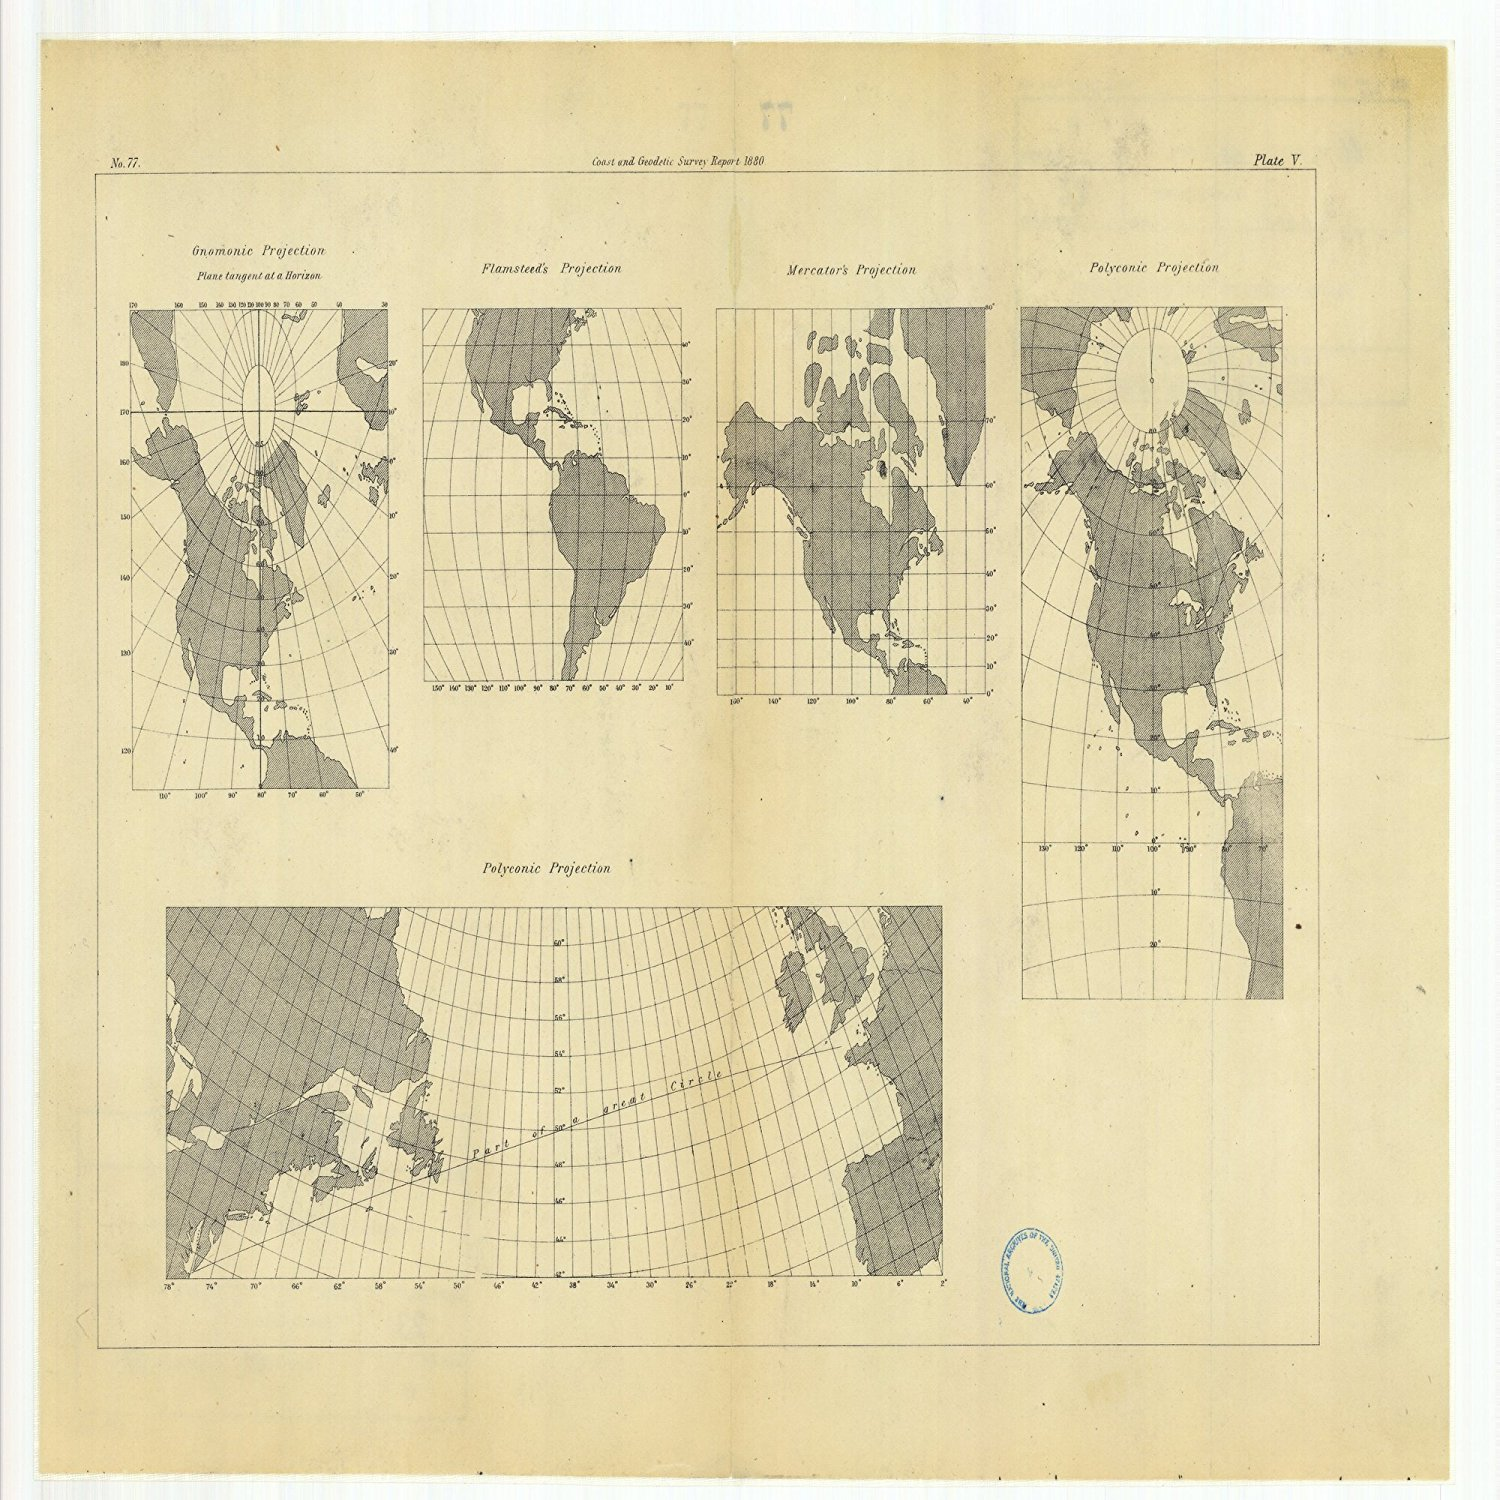 Vintography 8 x 12 inch 1880 US Old Nautical map Drawing Chart Gnomonic Projection Flamsteed's Projection, Mercator's Projection Polyconic Projections from US Coast & Geodetic Survey x6004